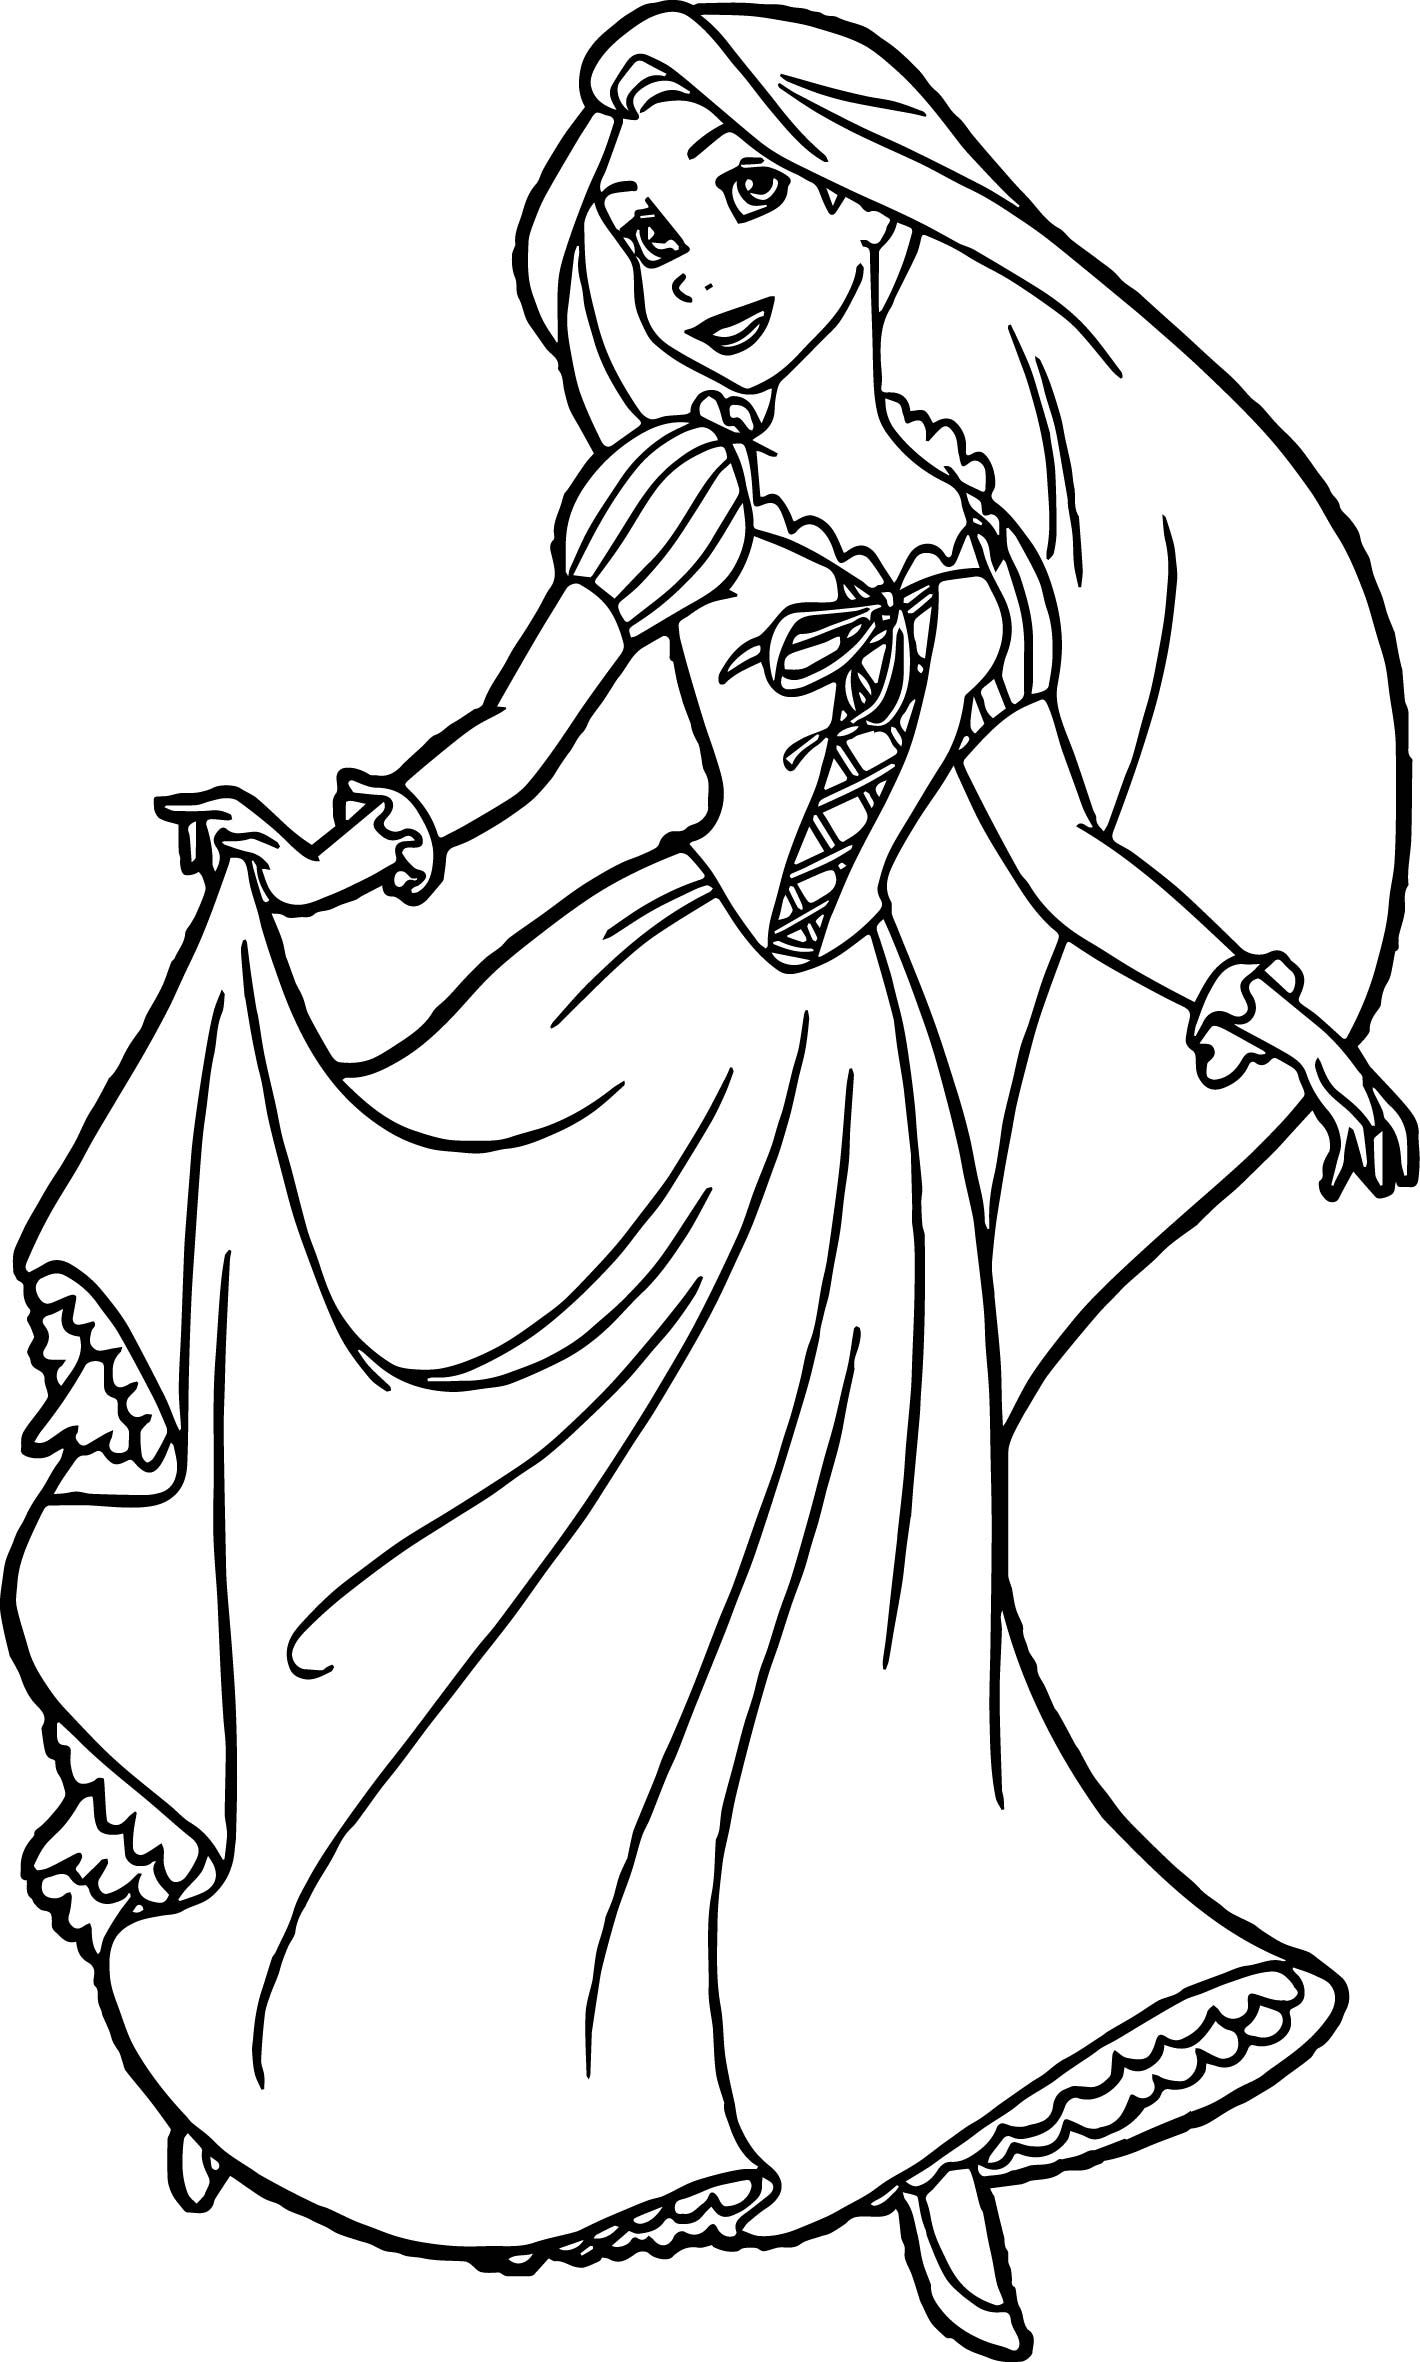 disney rapunzel pictures to color rapunzel coloring pages to download and print for free rapunzel disney to pictures color